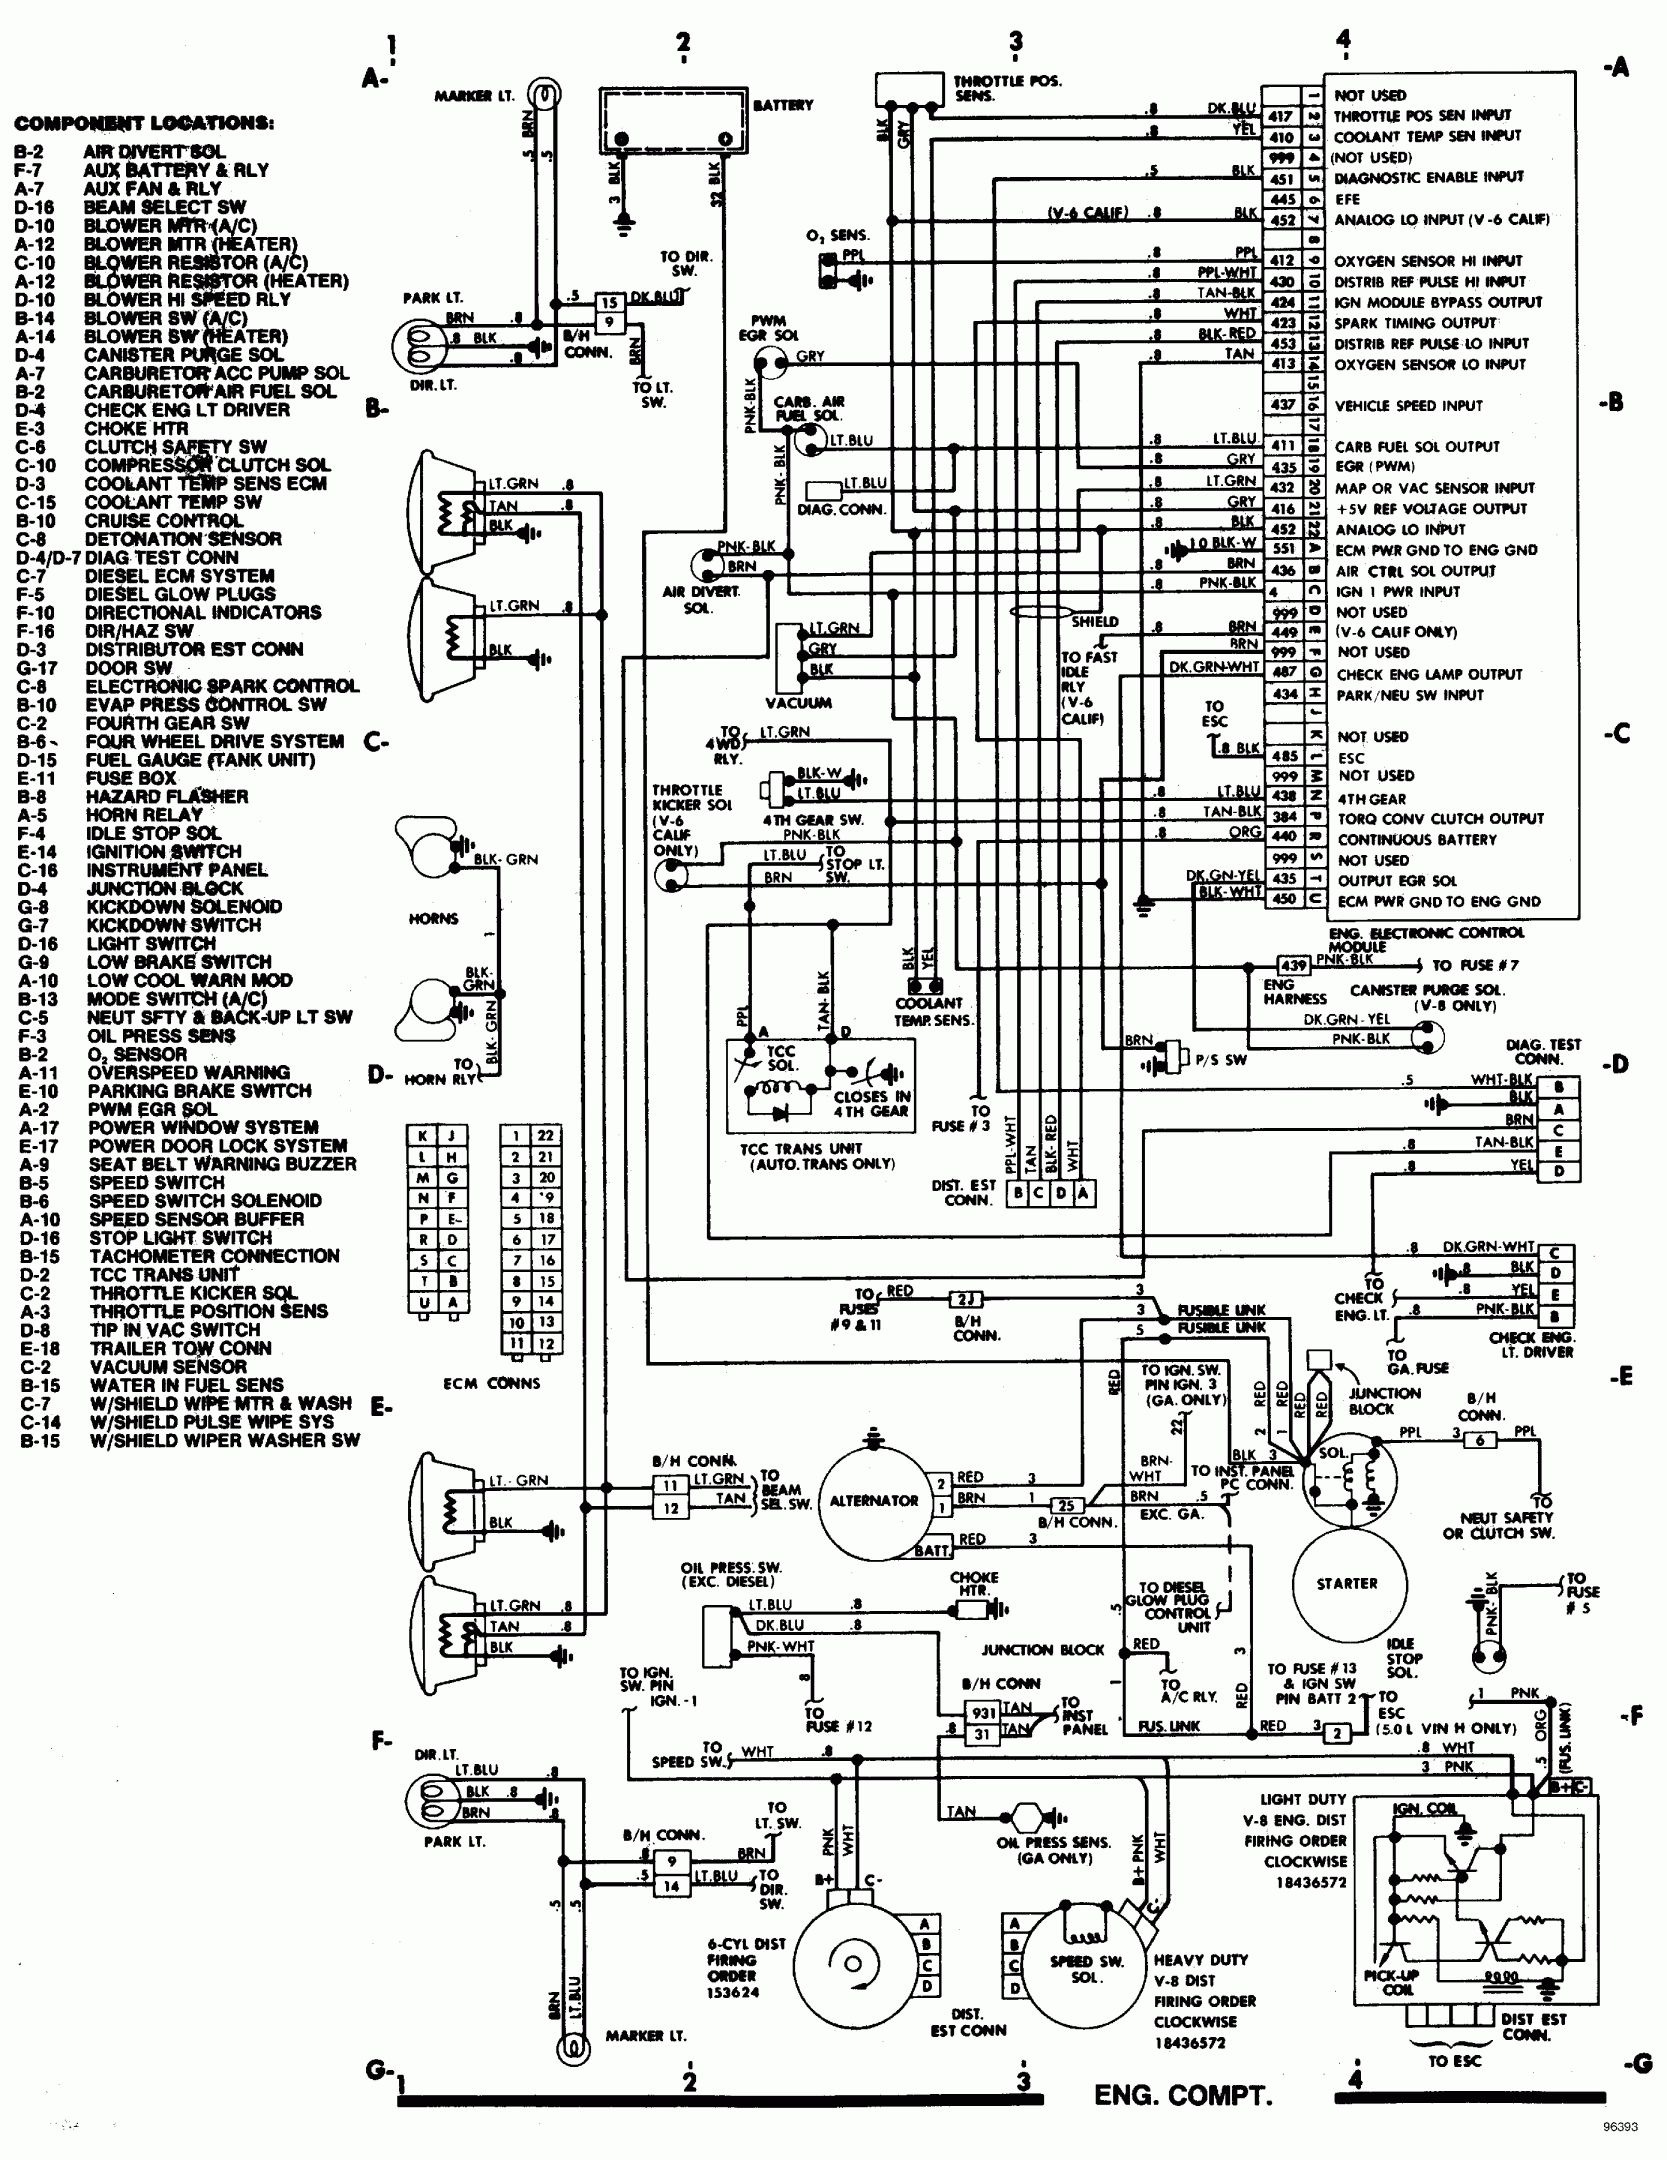 18 1985 Chevy Truck Wiring Diagram Electrical Wiring Diagram Electrical Diagram Chevy Trucks